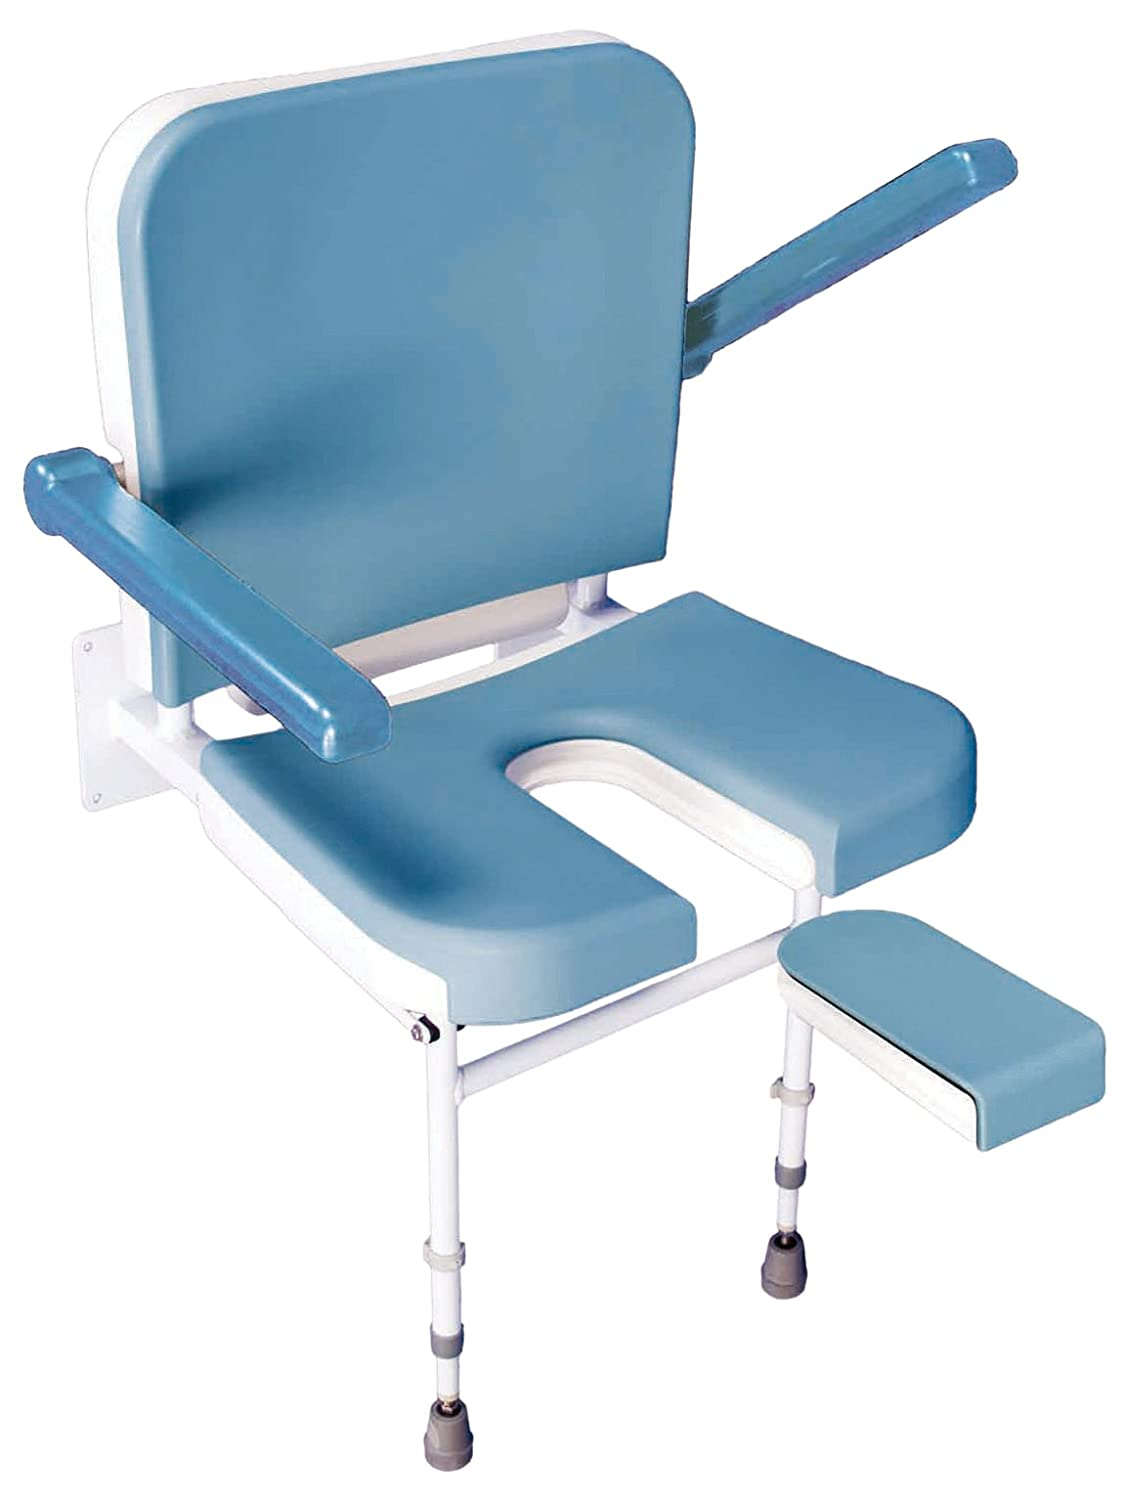 Amazon.com: Solo Deluxe U Shape Padded Fold Up Shower Seat with Back ...